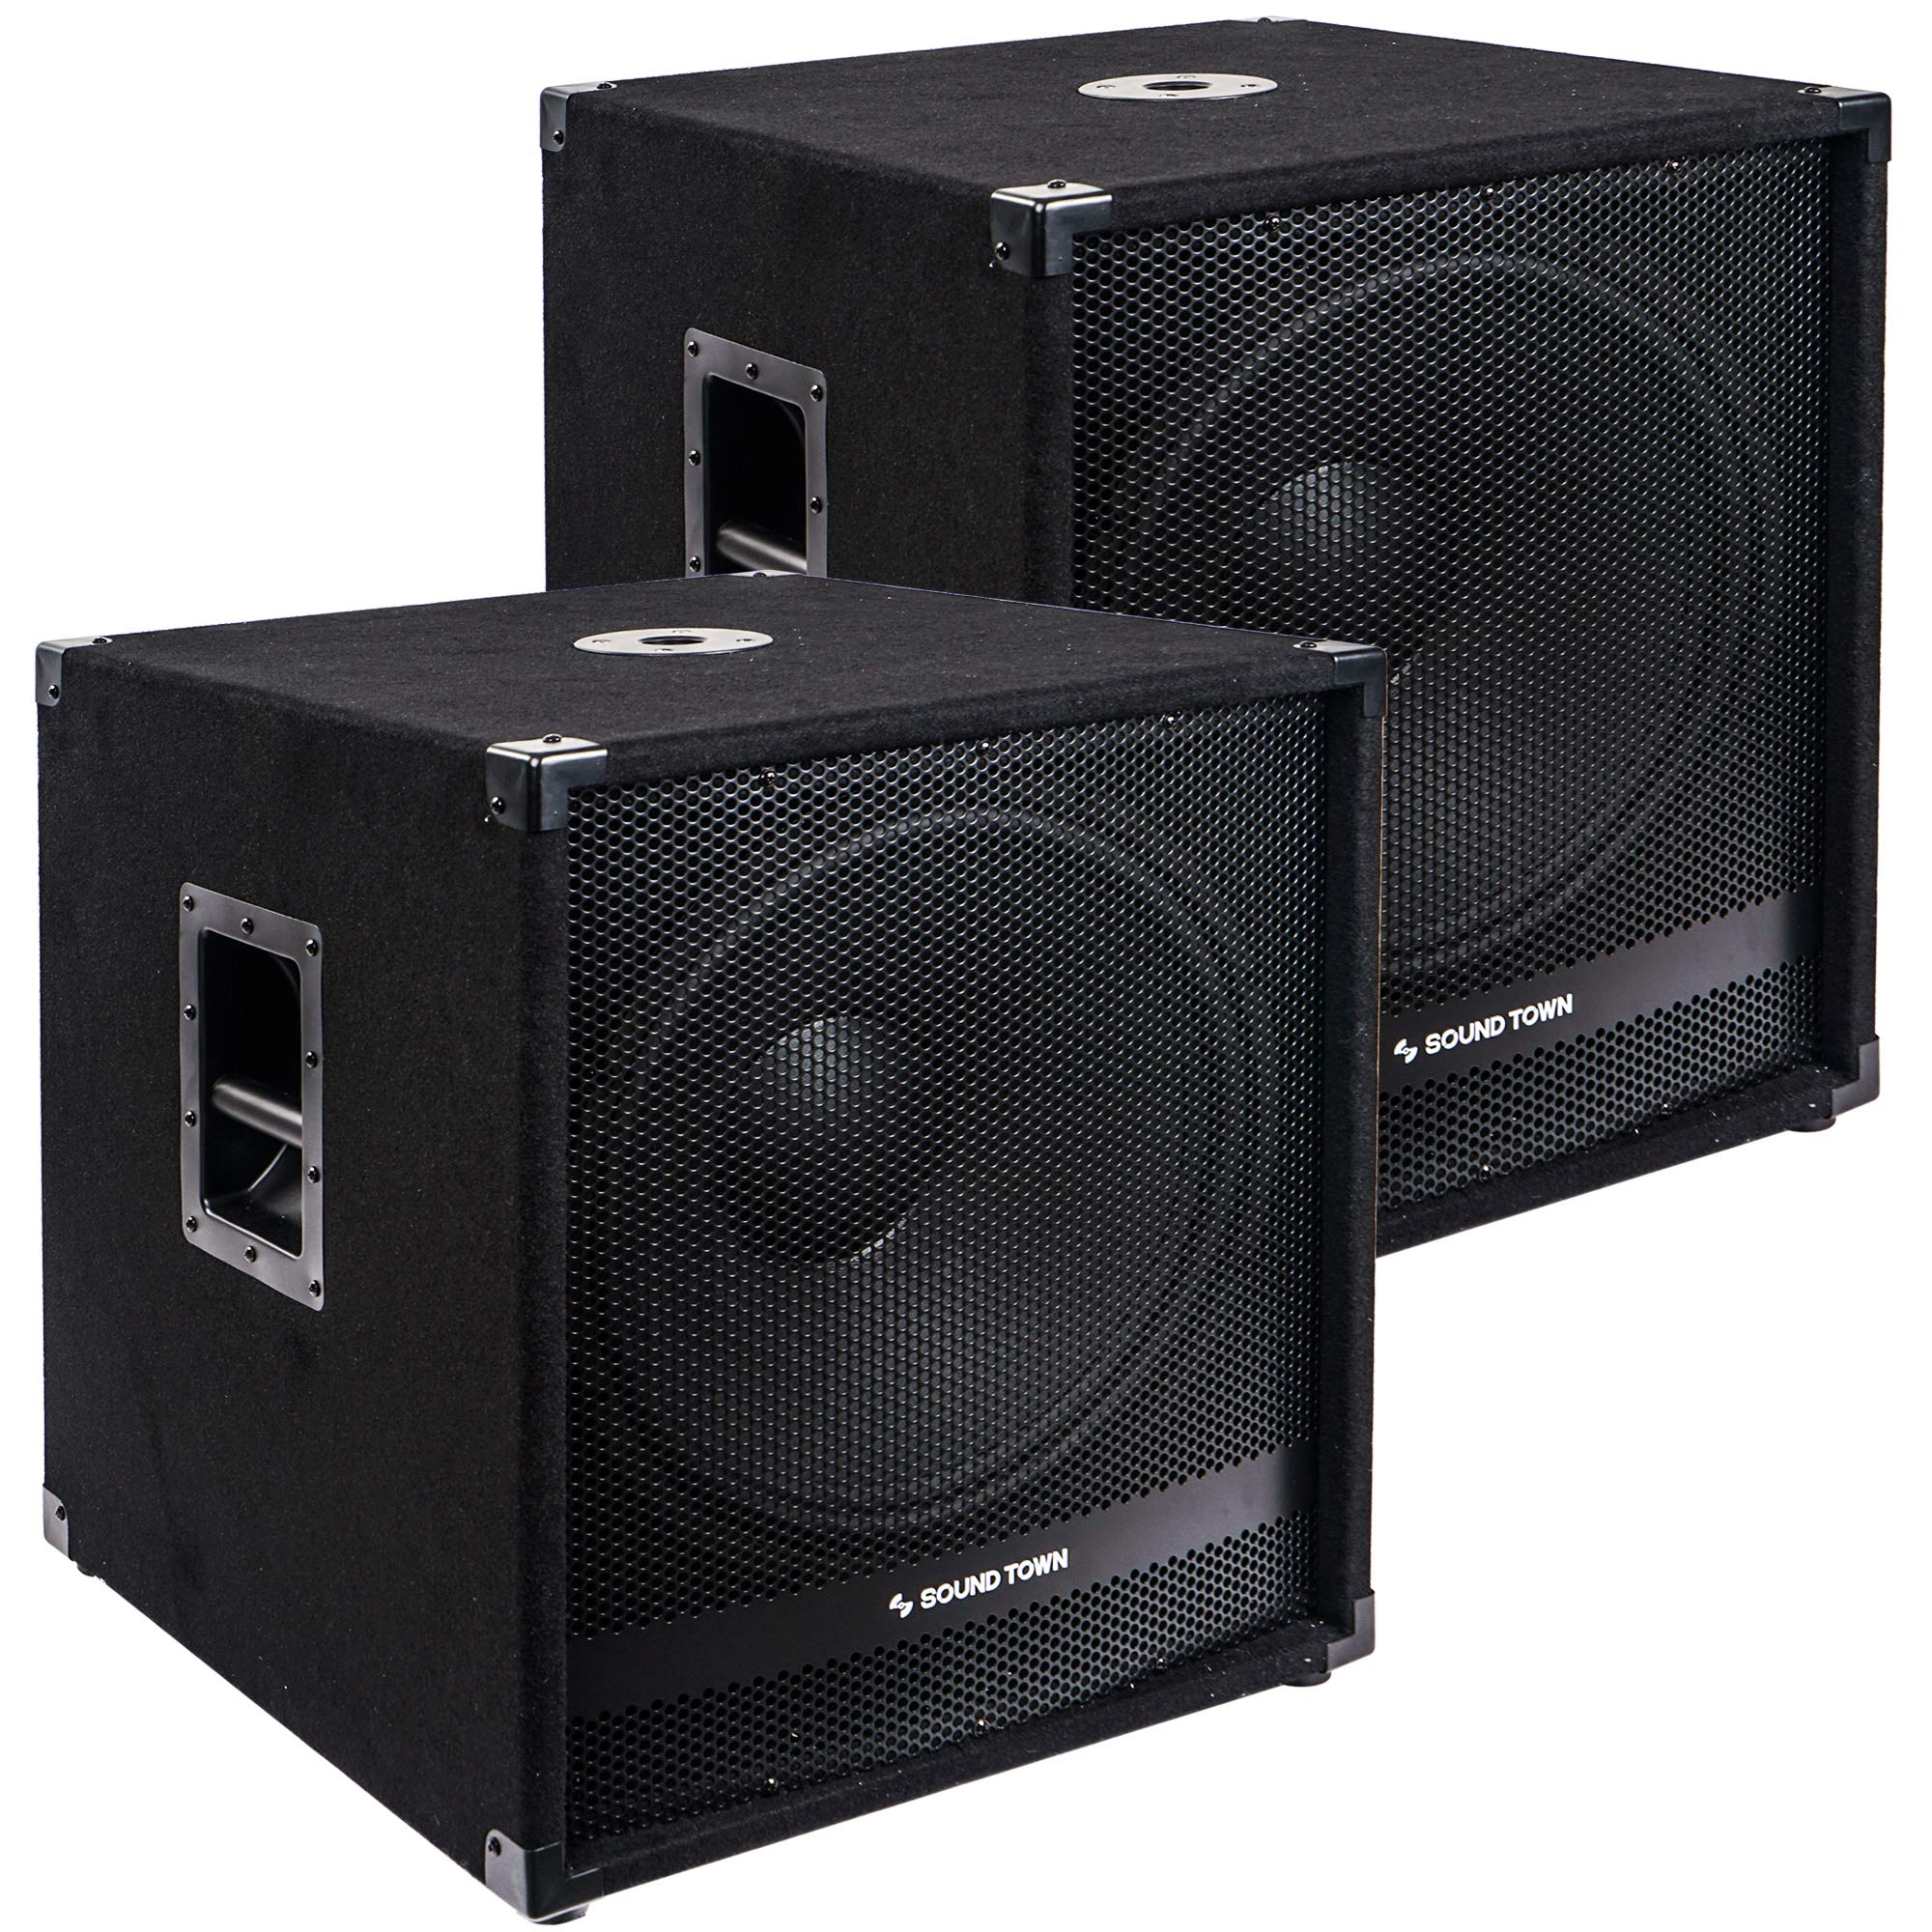 Sound Town 2-Pack 18'' 2000 Watts Powered Subwoofers with Speaker Outputs, DJ PA Pro Audio Sub with 4-inch Voice Coil (METIS-18SPW2.1-PAIR) by Sound Town